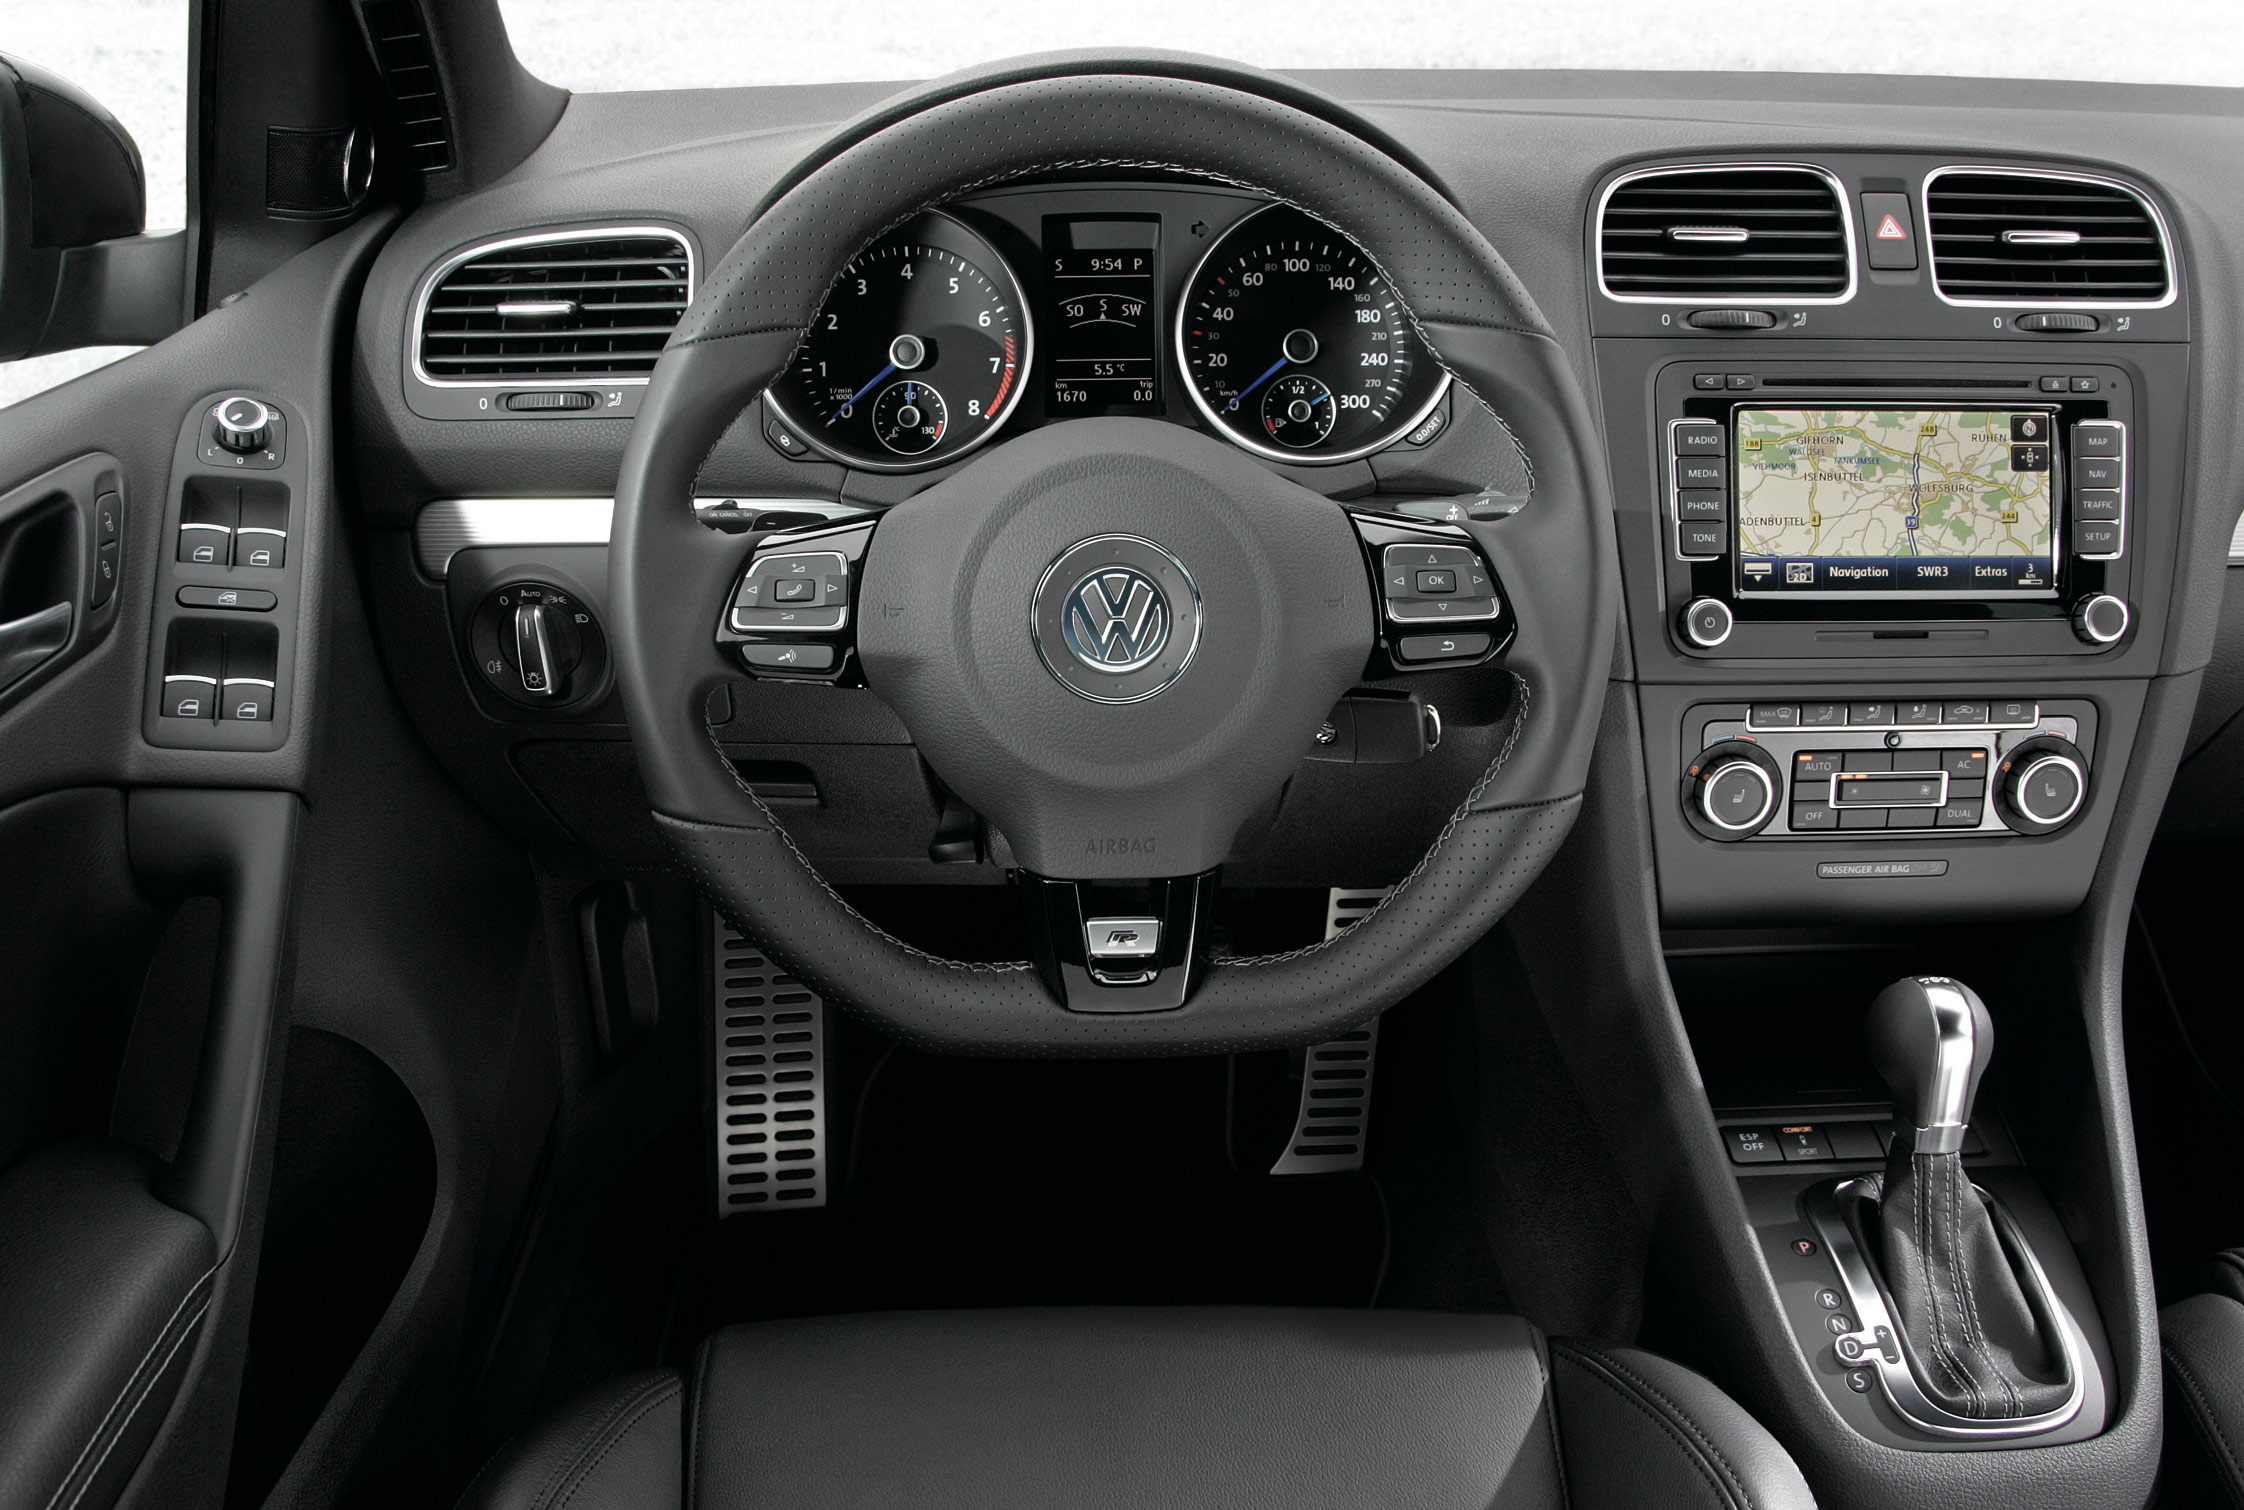 essai volkswagen golf vi r motorlegend. Black Bedroom Furniture Sets. Home Design Ideas